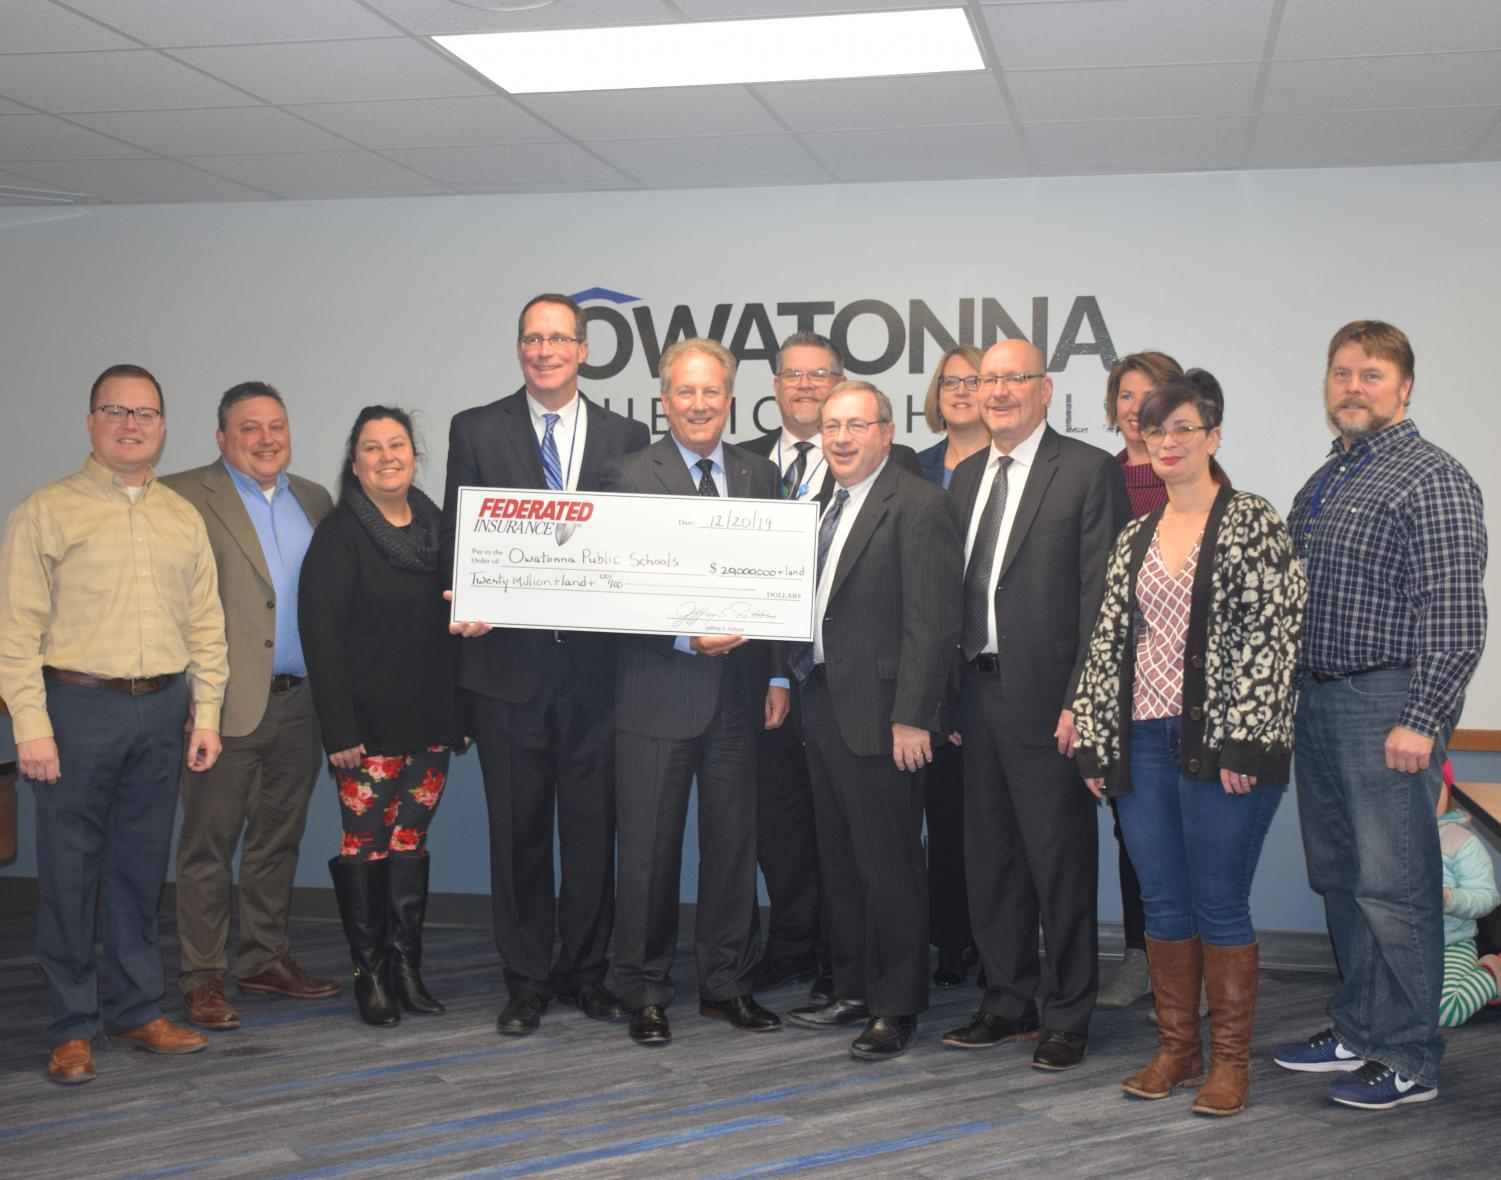 CEO Jeff Fetters and CFO Mike Keller present the check from Federated Insurance to the Owatonna School Board at 7 a.m. on Dec. 20, 2019